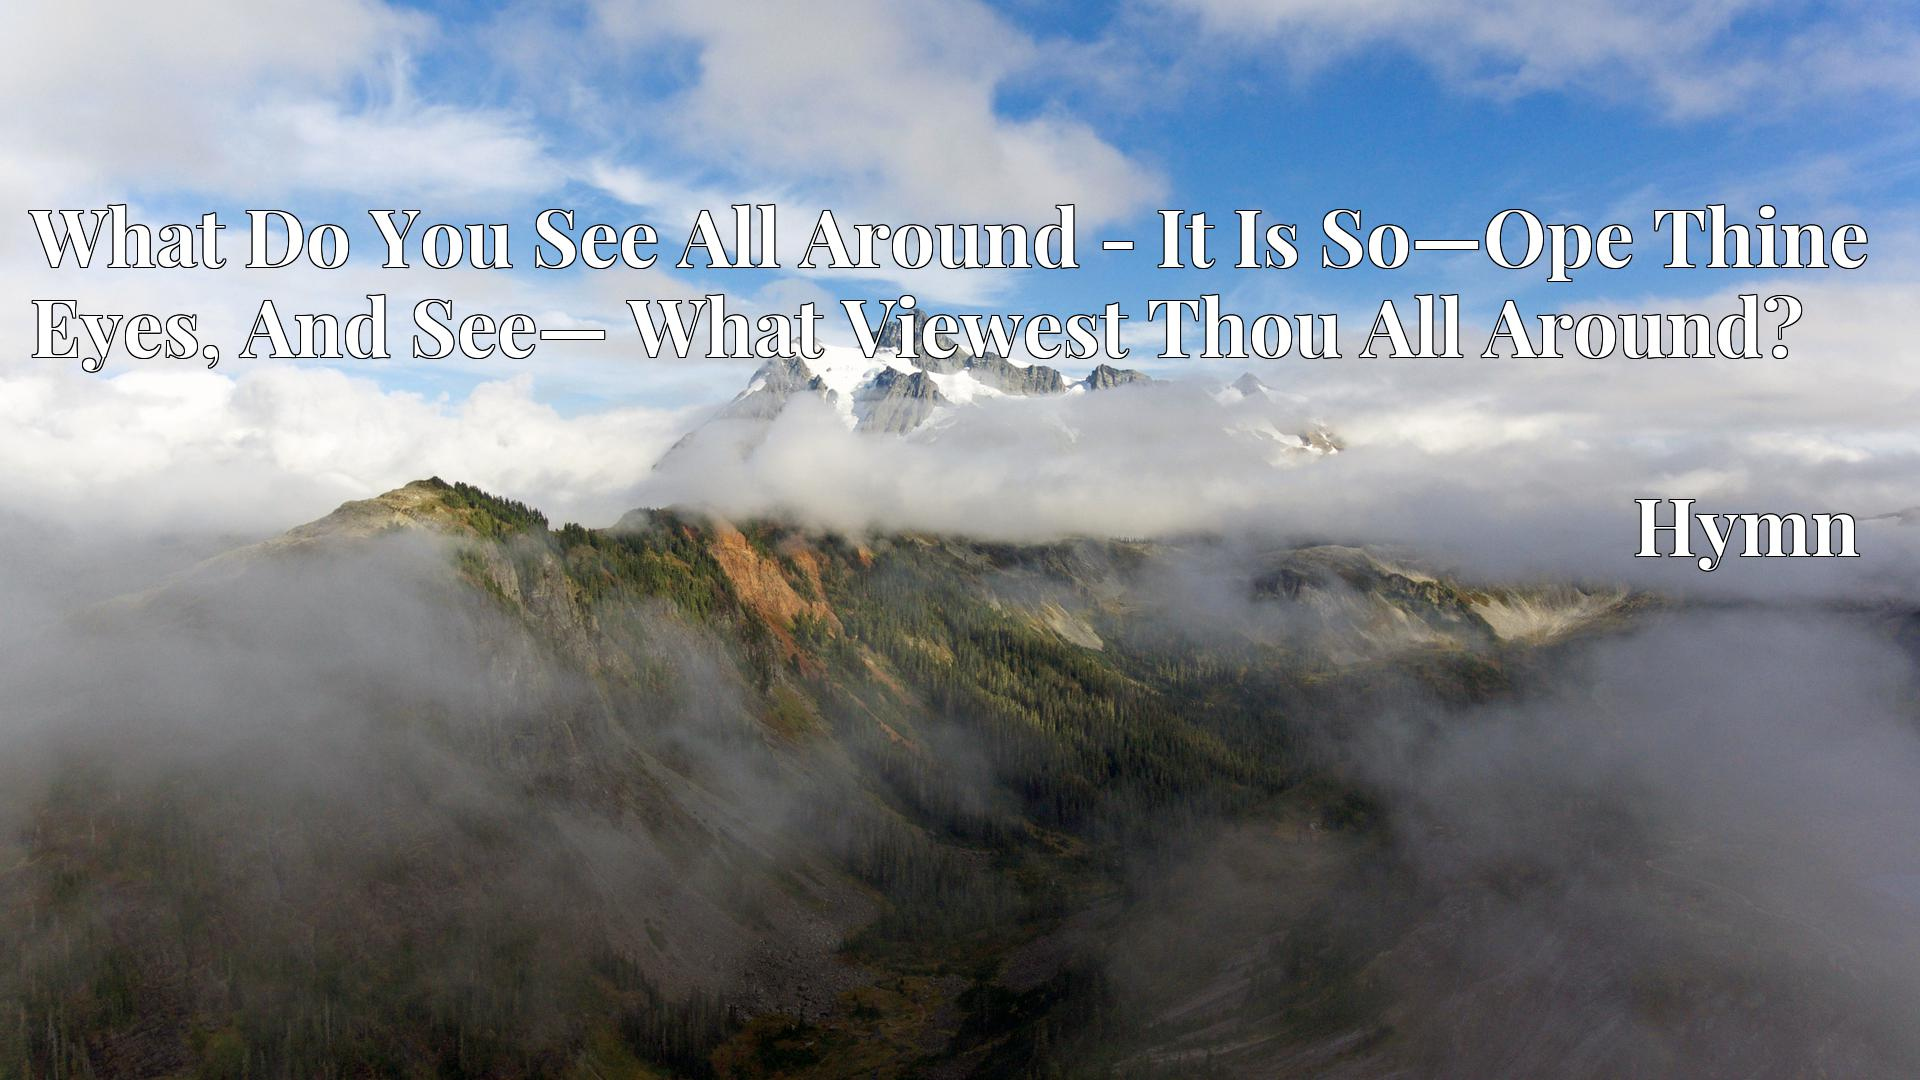 What Do You See All Around - It Is So—Ope Thine Eyes, And See— What Viewest Thou All Around? Hymn